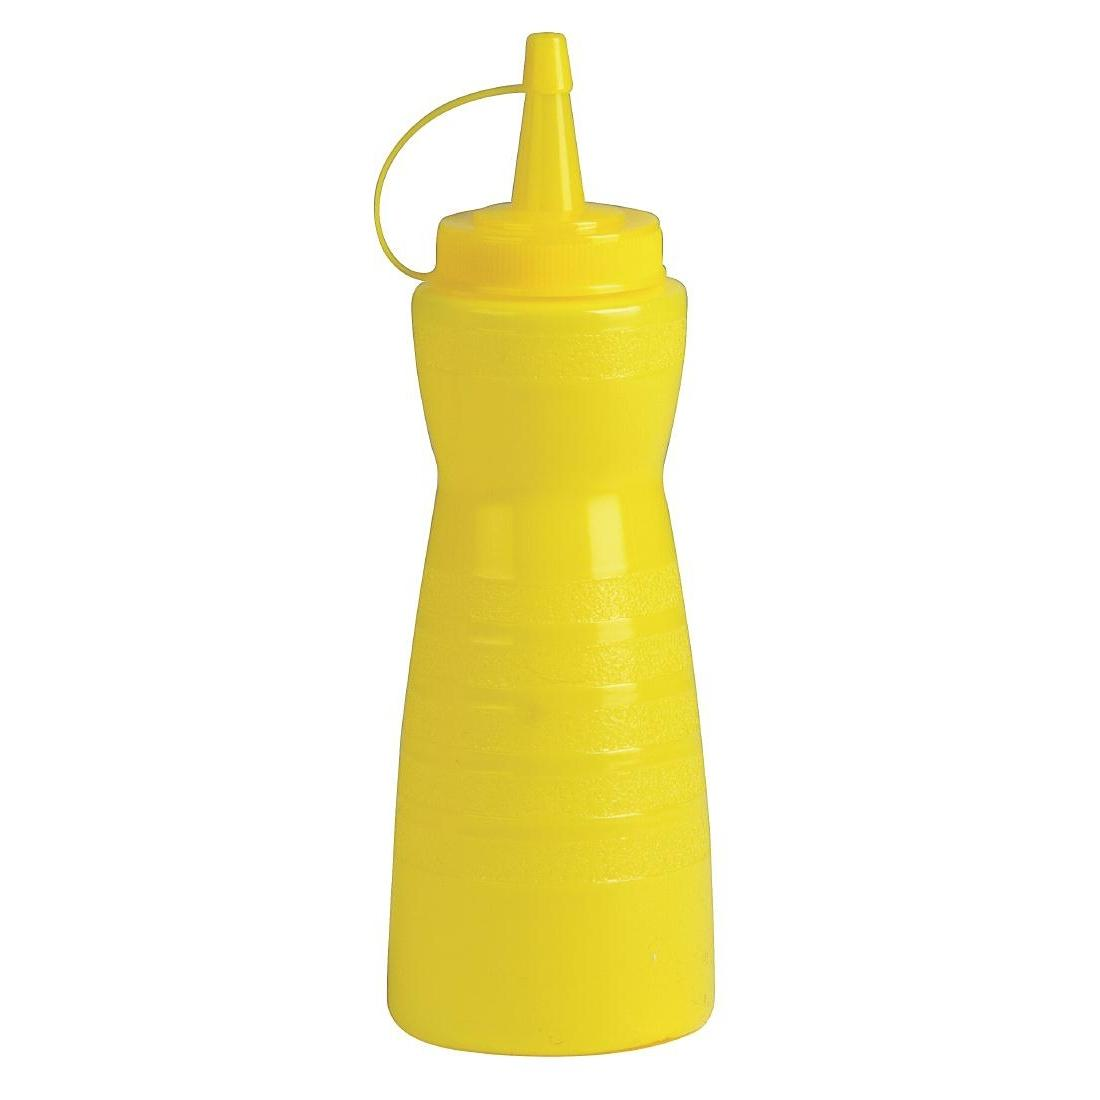 GF252 - Vogue Yellow Lidded Sauce Bottle - Each - GF252